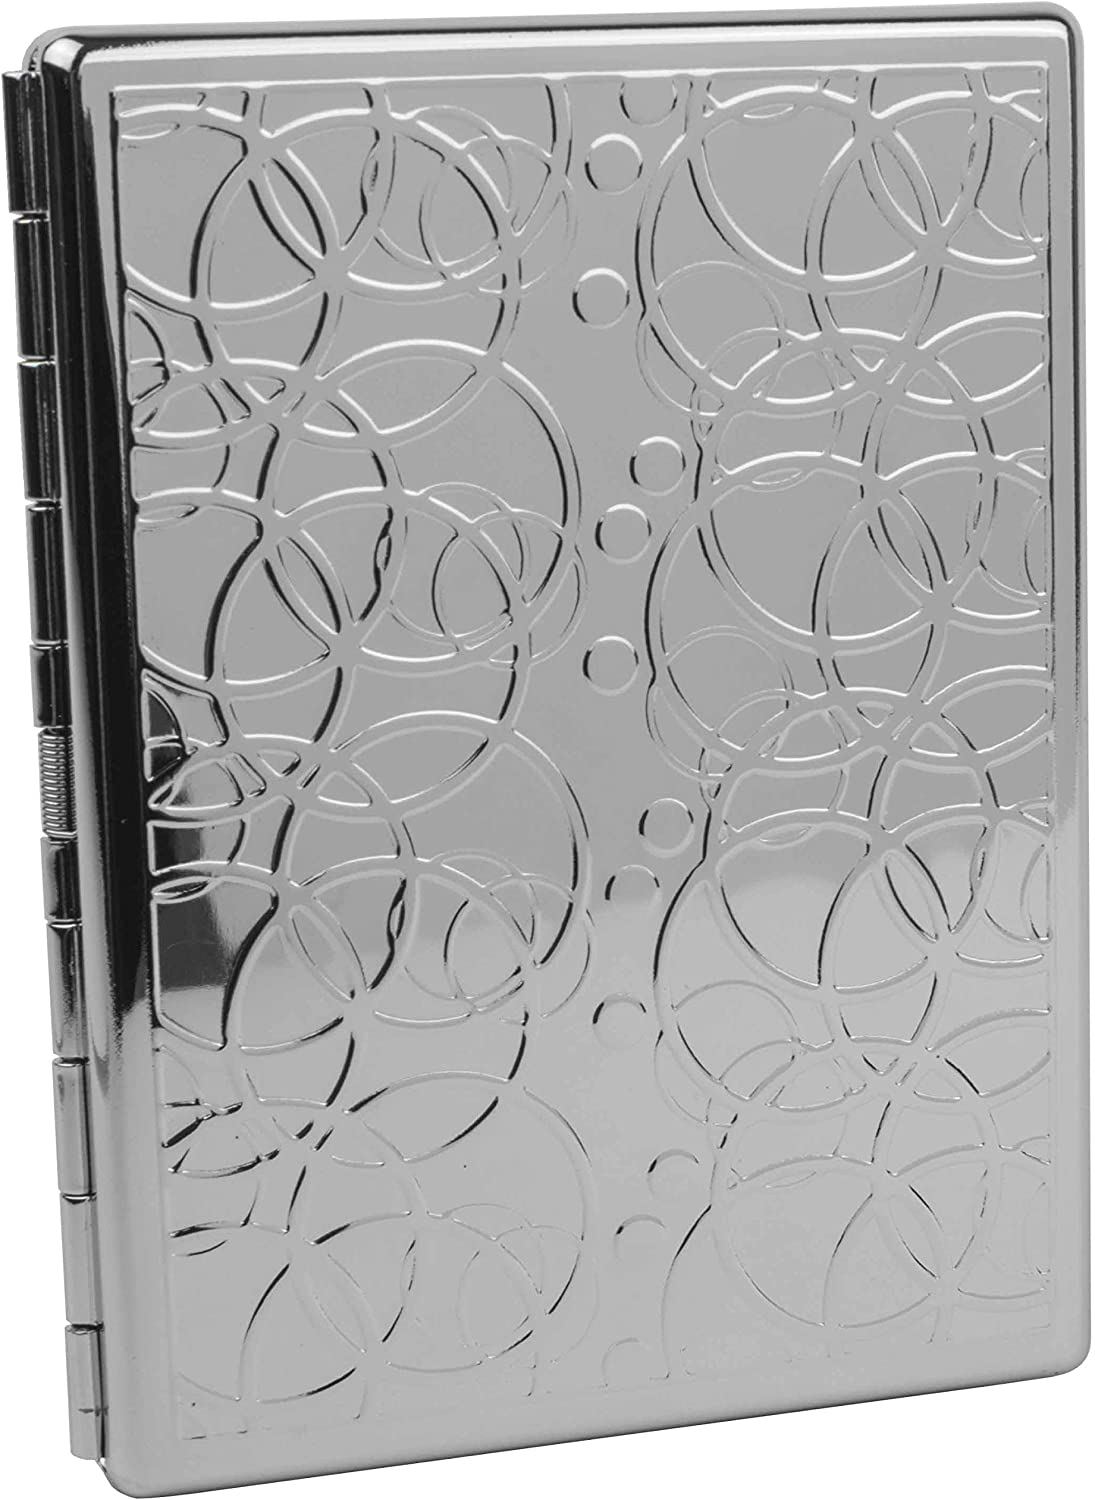 Popular brand Silver Rings Compact 9 100s Metal-Plated Colorado Springs Mall Case Stas Cigarette